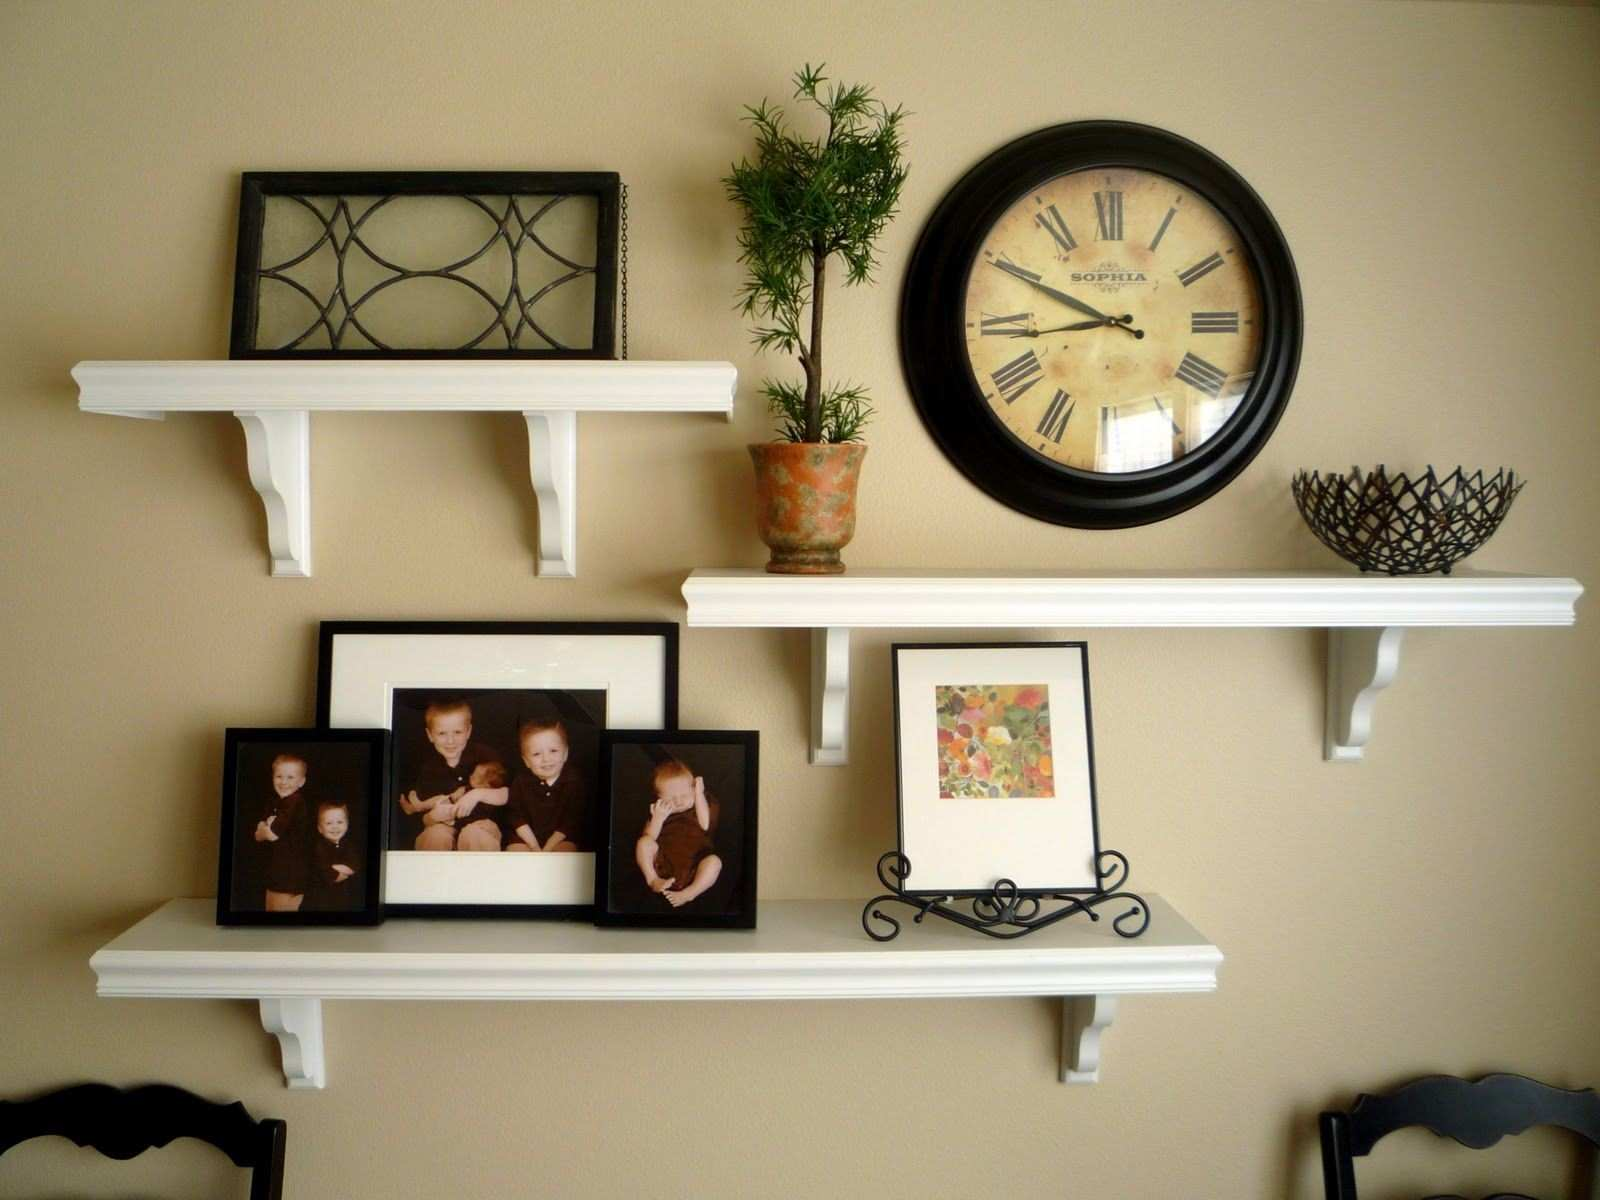 Stylish DIY Floating Shelves & Wall Shelves Easy